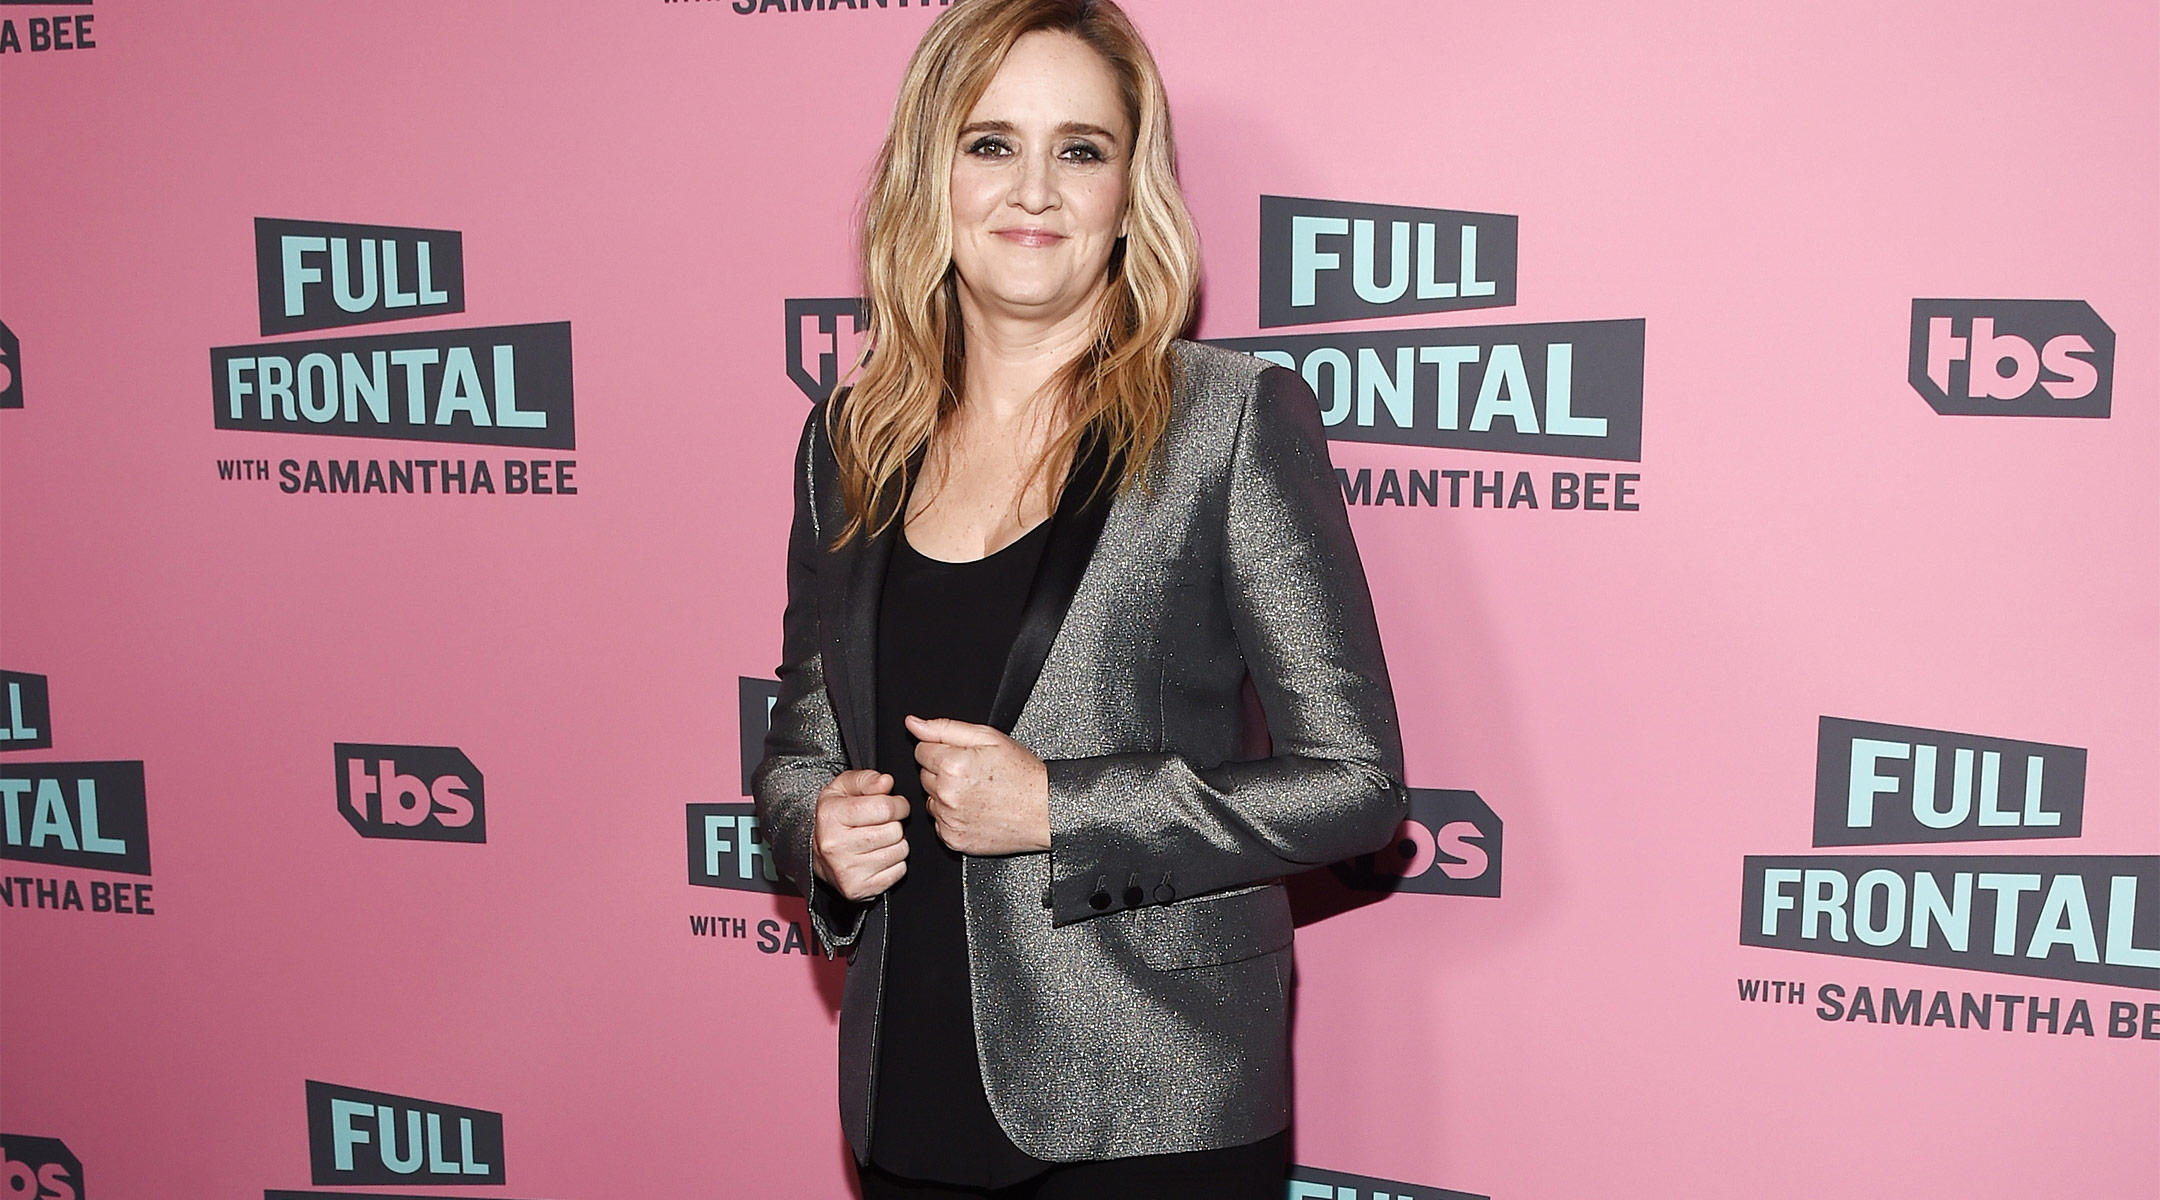 The Bump - Samantha Bee Slams Workplace Culture For Pregnancy Discrimination In Must See Segment